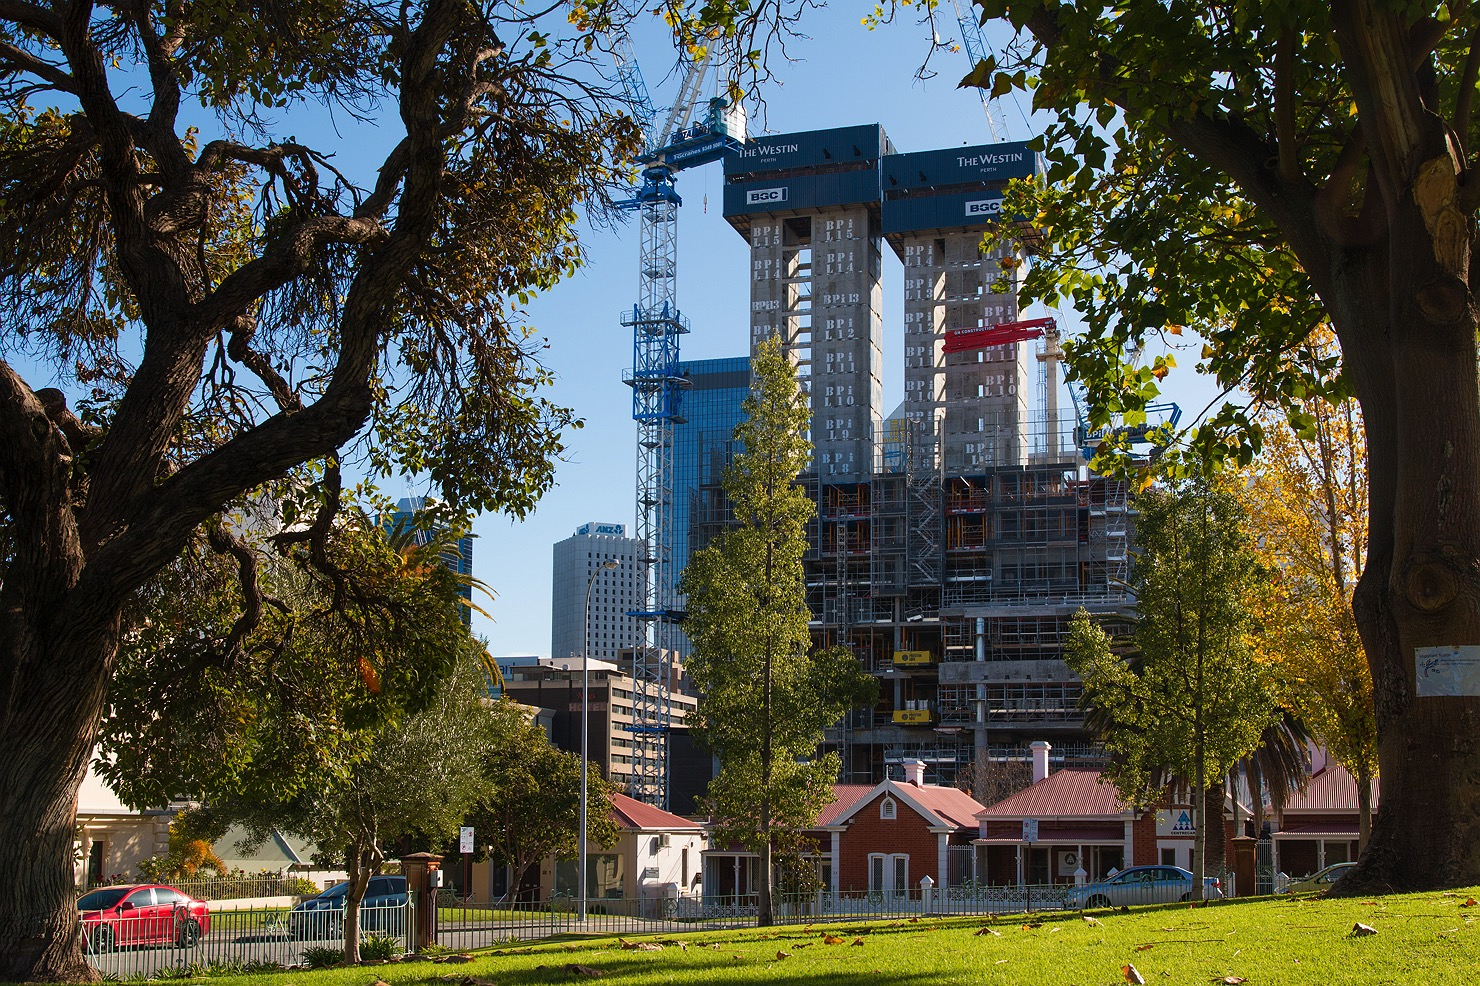 the-westin-towers-construction-perth-wa-01